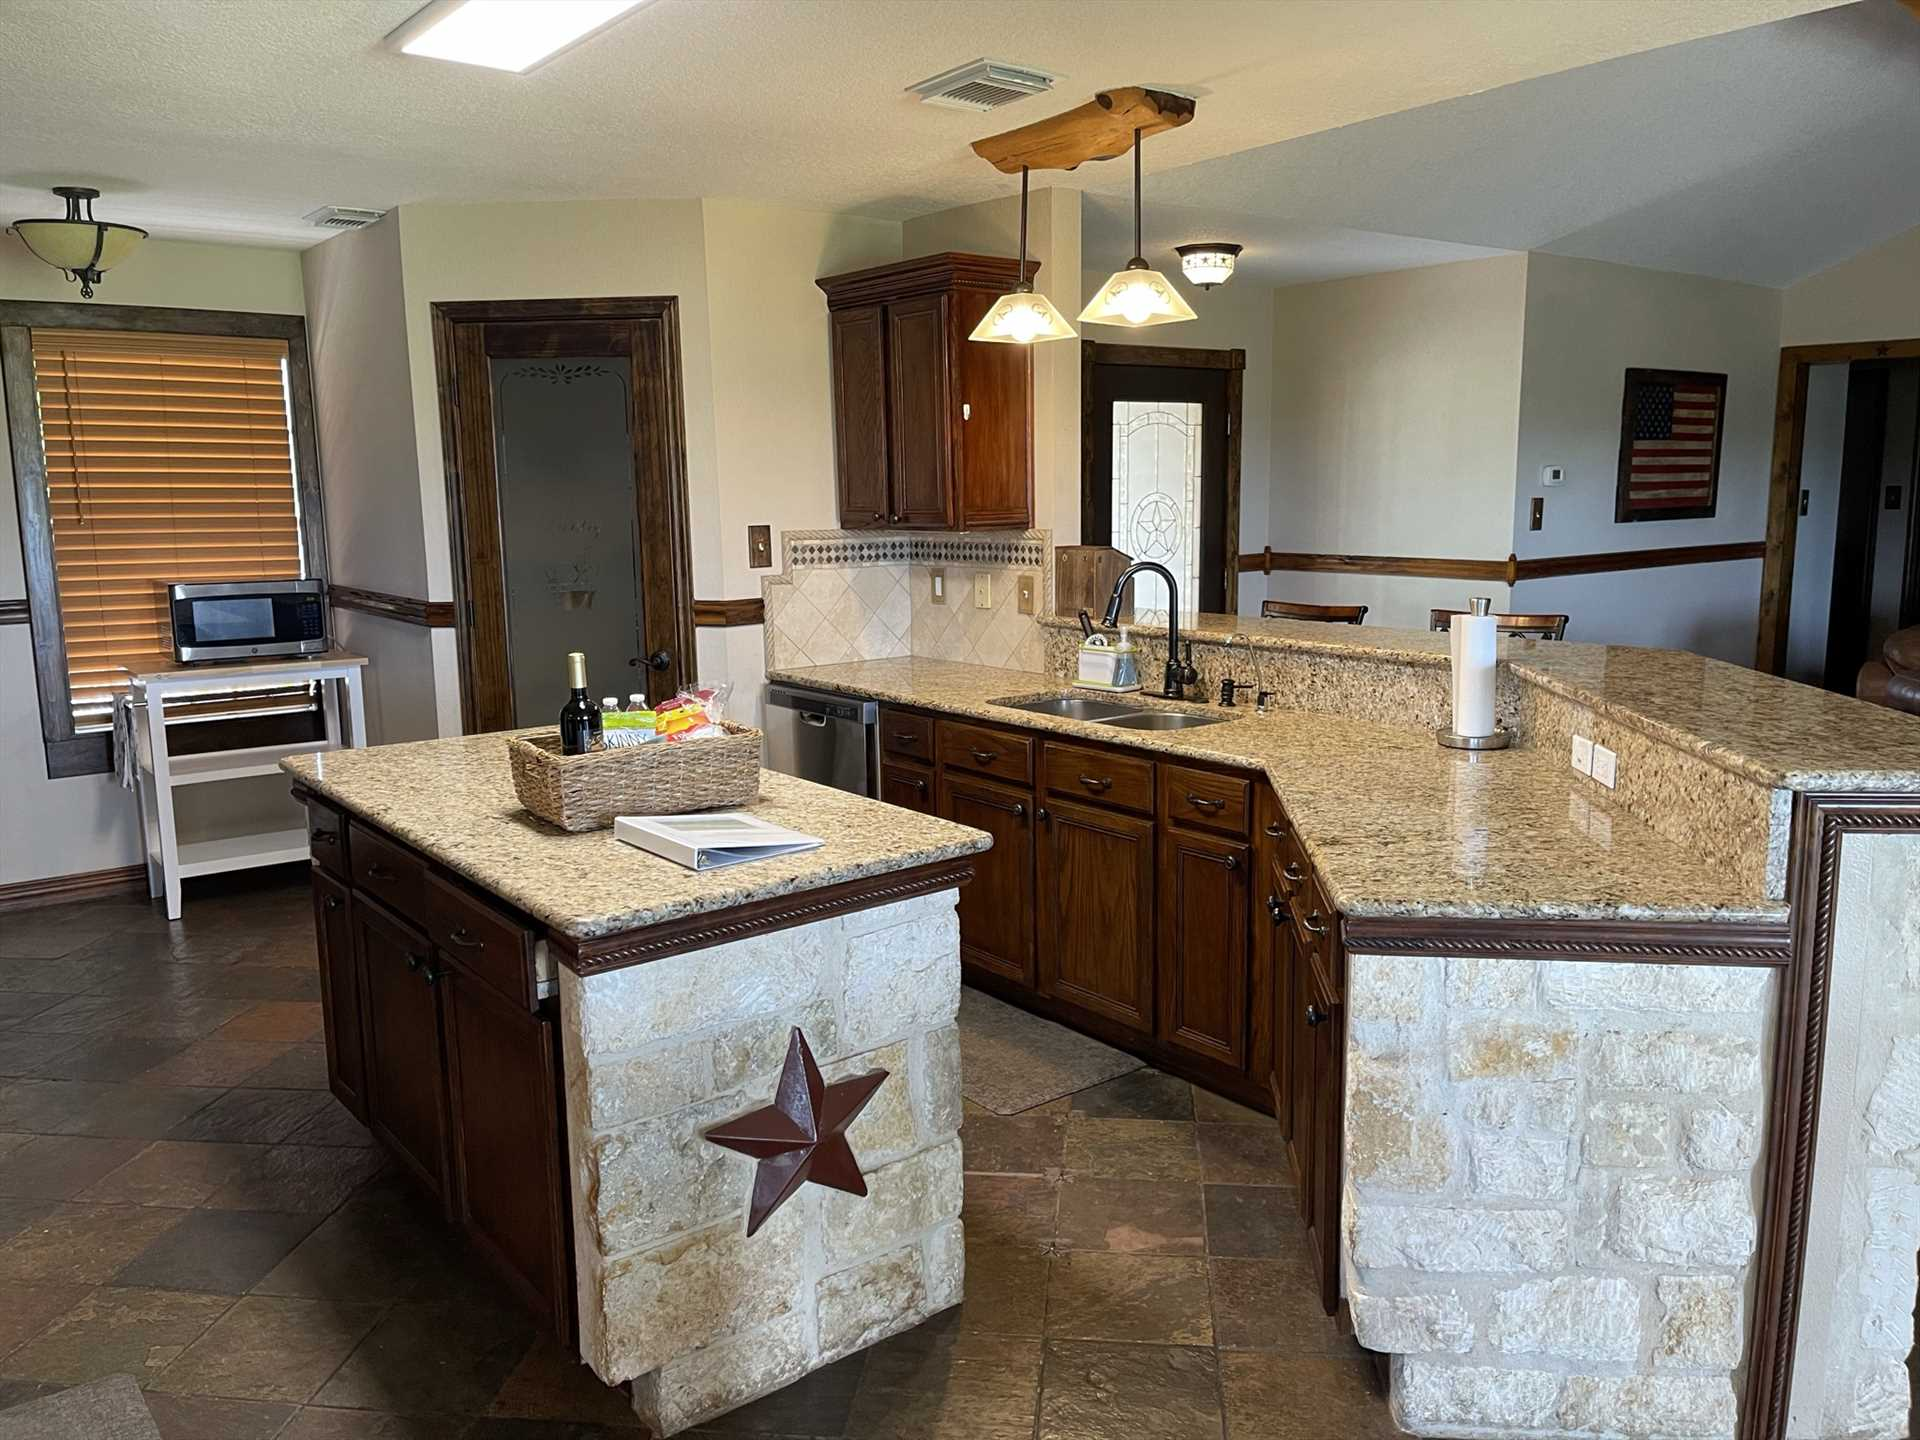 Modern appliances and plenty of counter space make the kitchen a foodie's dream!